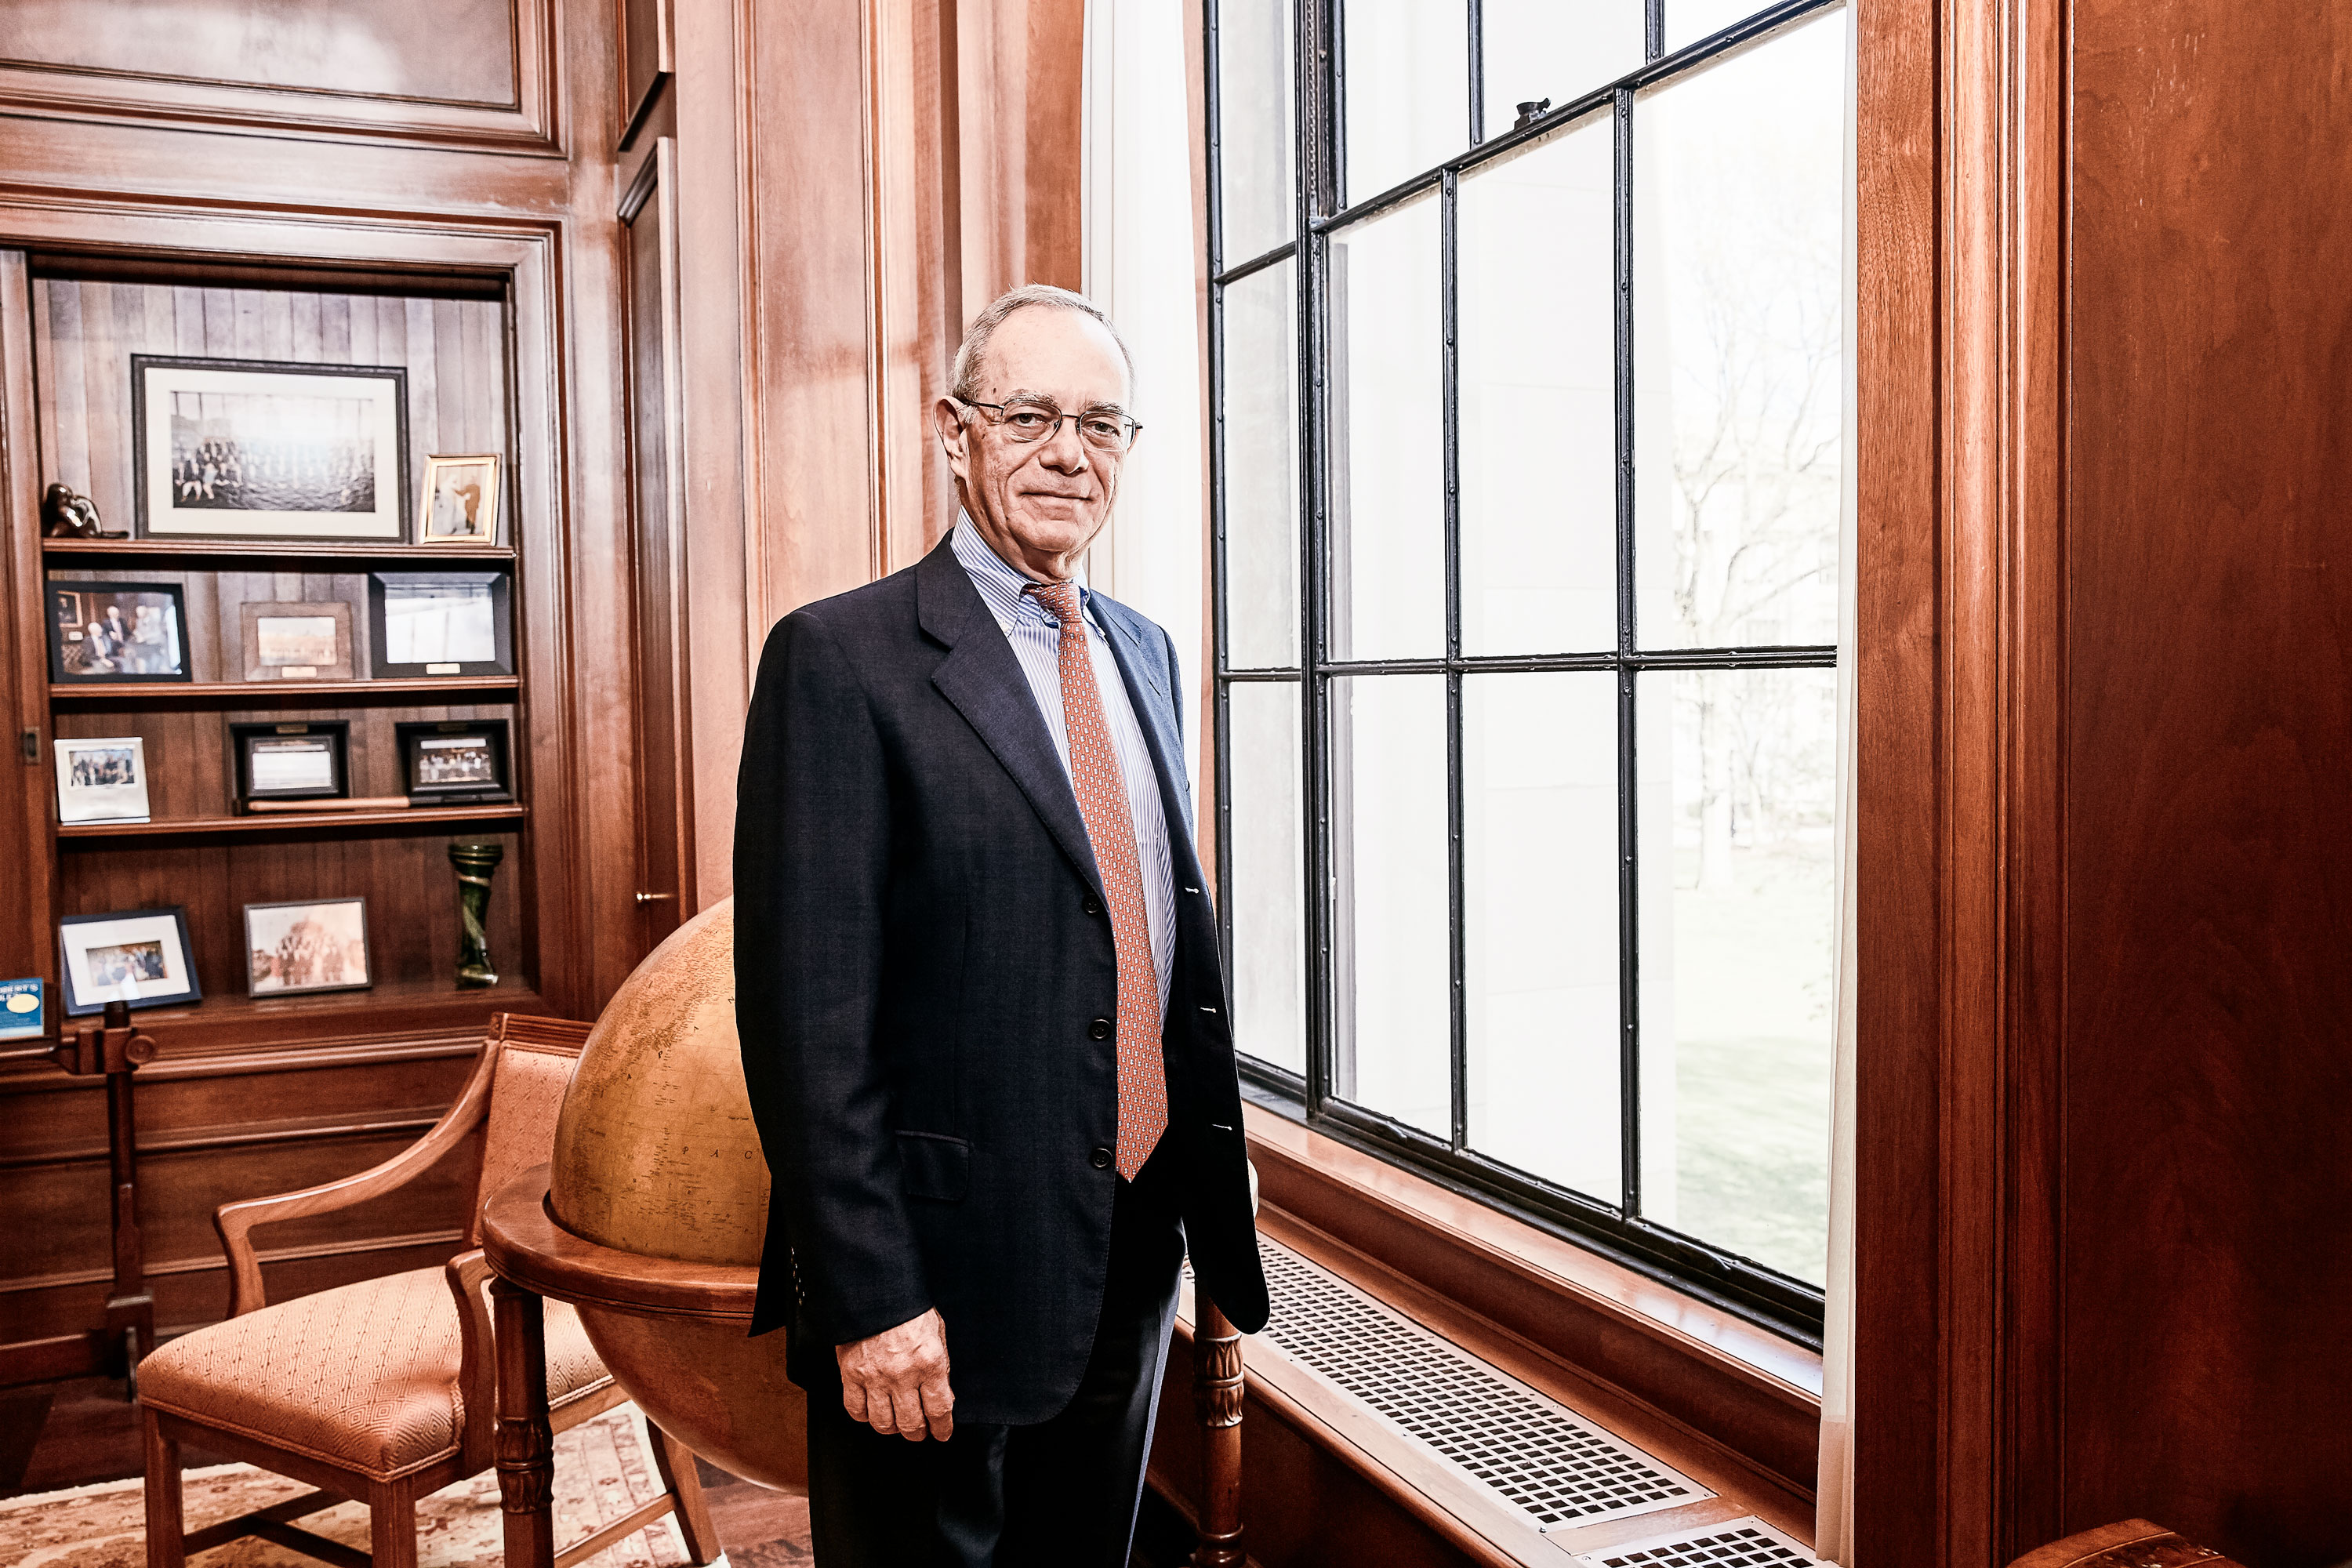 MIT President in his office